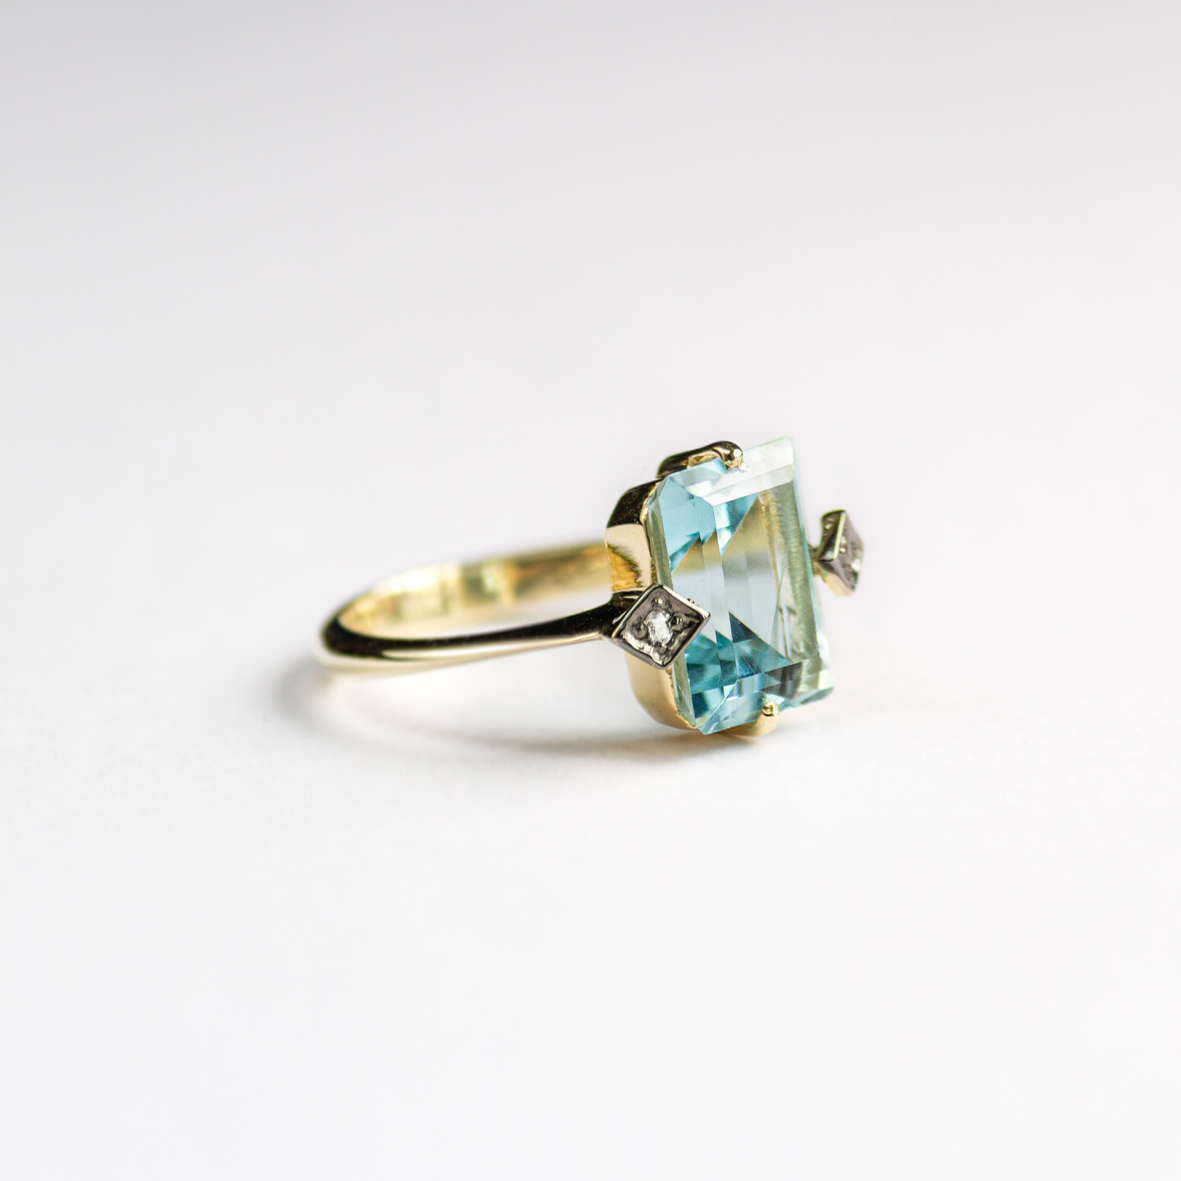 3. OONA_gems of ceylon_ficha2_blue aquamarine ring